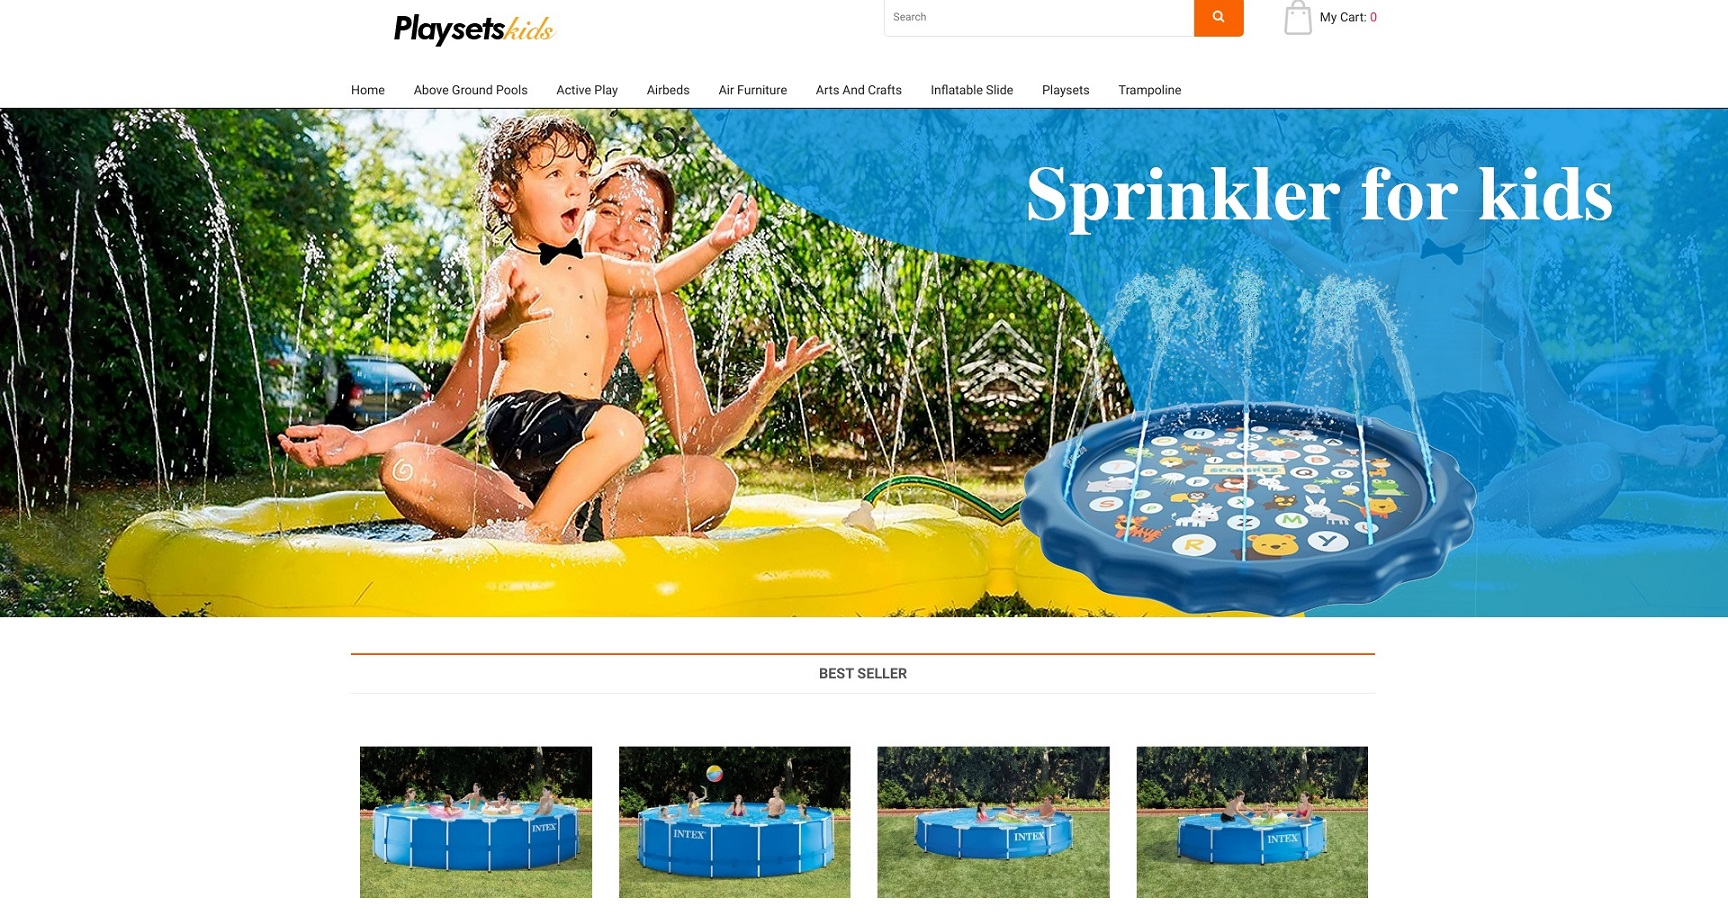 Is Playsetskids a Scam? See the Review of the Online Store